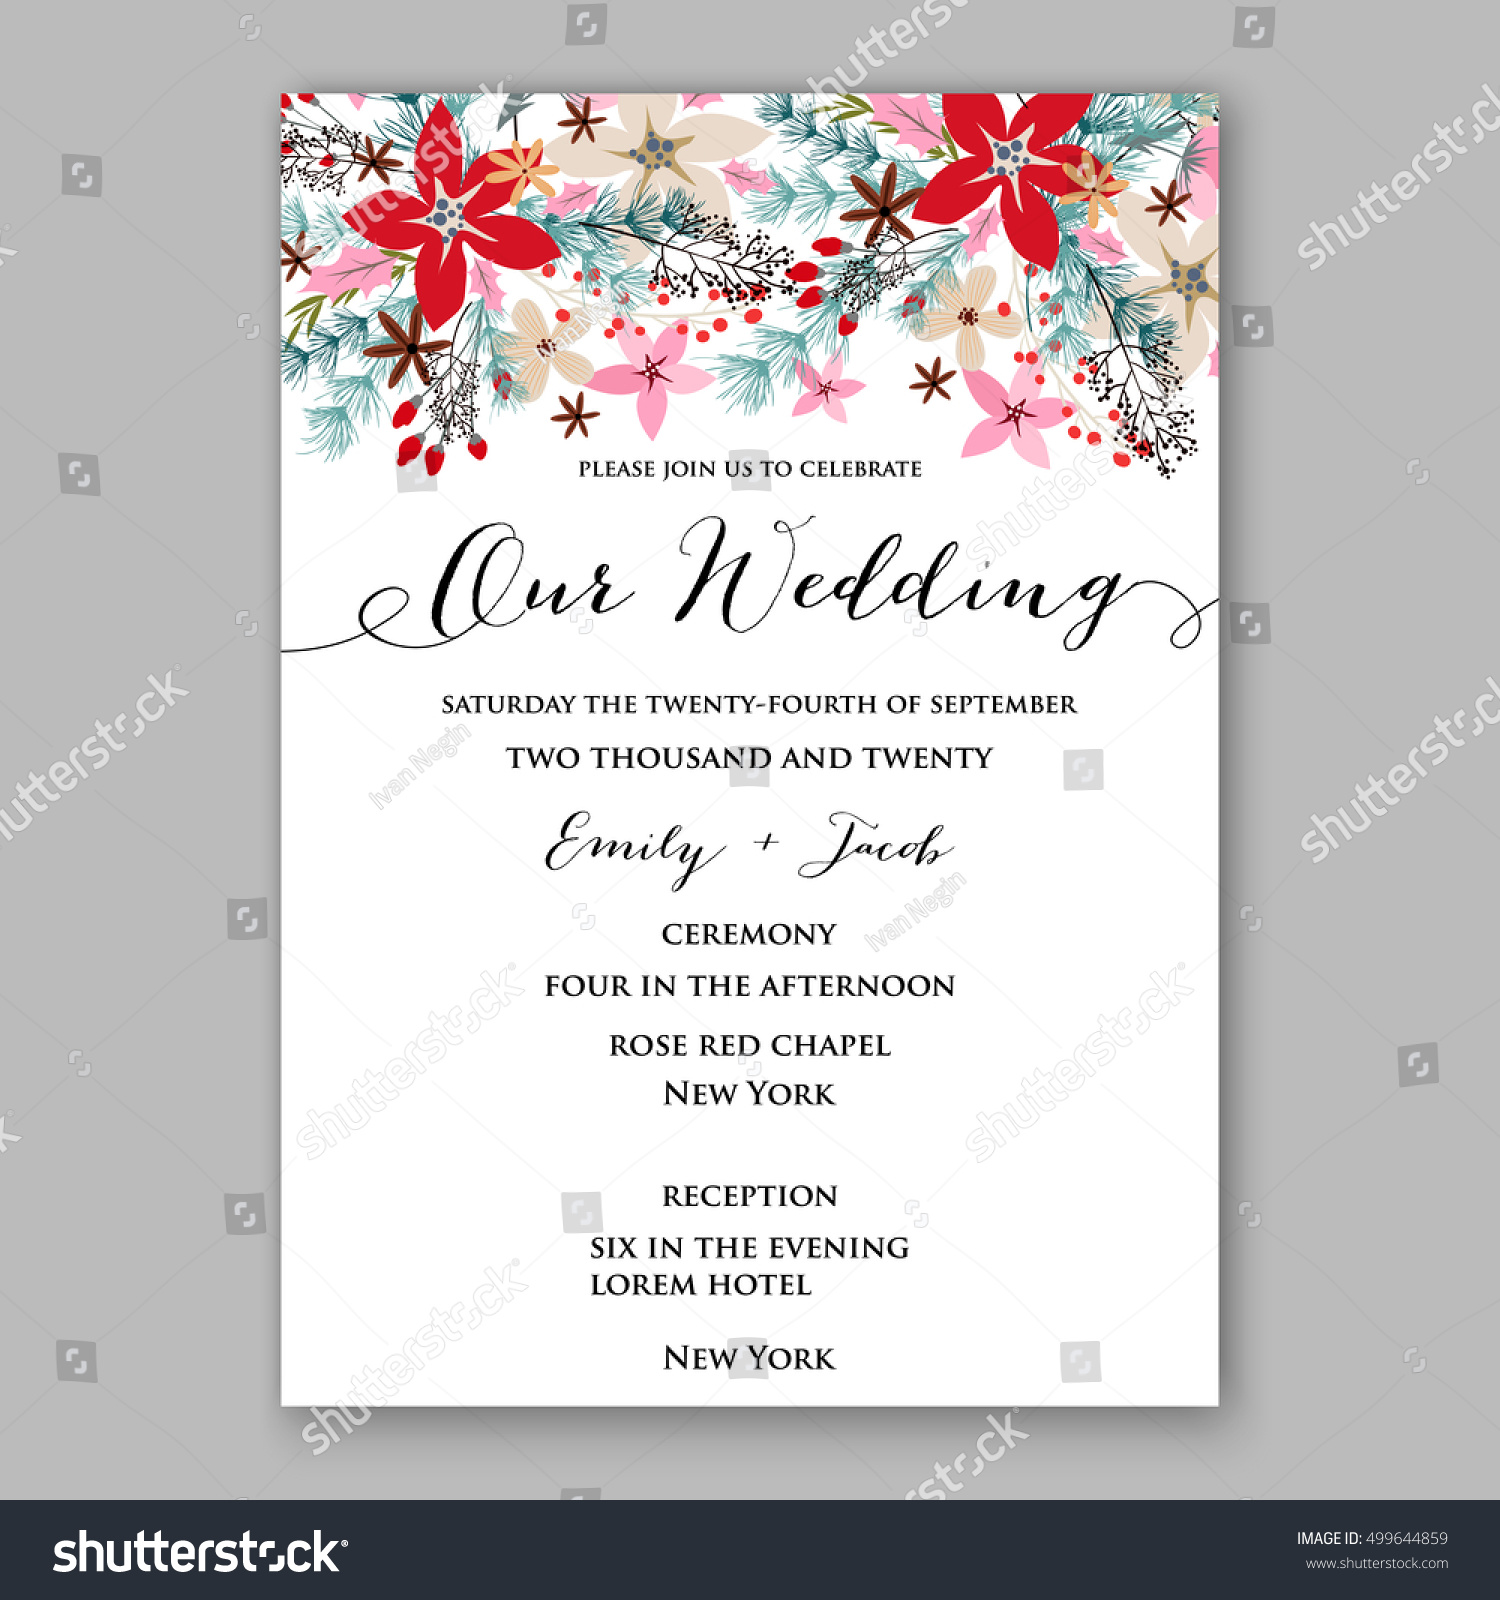 Wedding invitation sample cards images party invitations ideas invitation sample card image collections invitation sample and poinsettia wedding invitation sample card beautiful stock vector stopboris Image collections